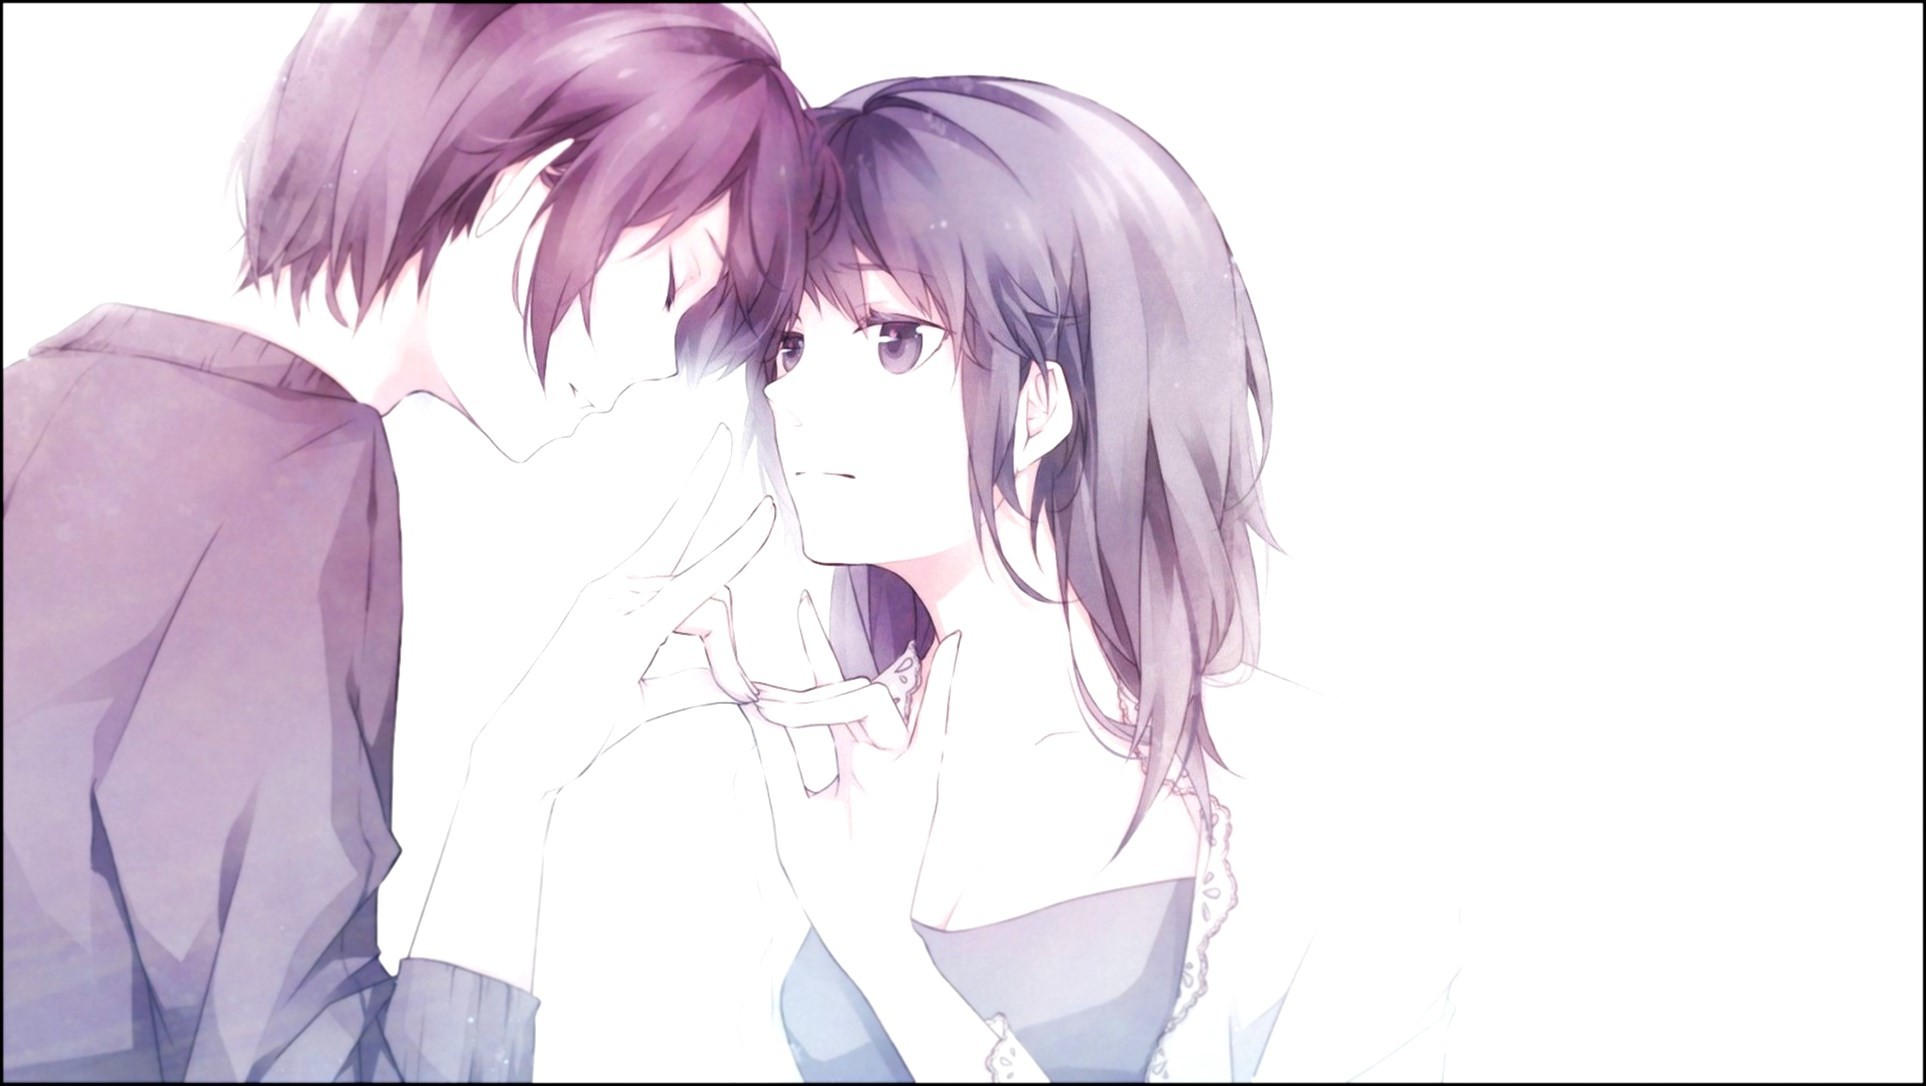 Cute anime couple wallpaper 70 images - Cute anime couple pictures ...